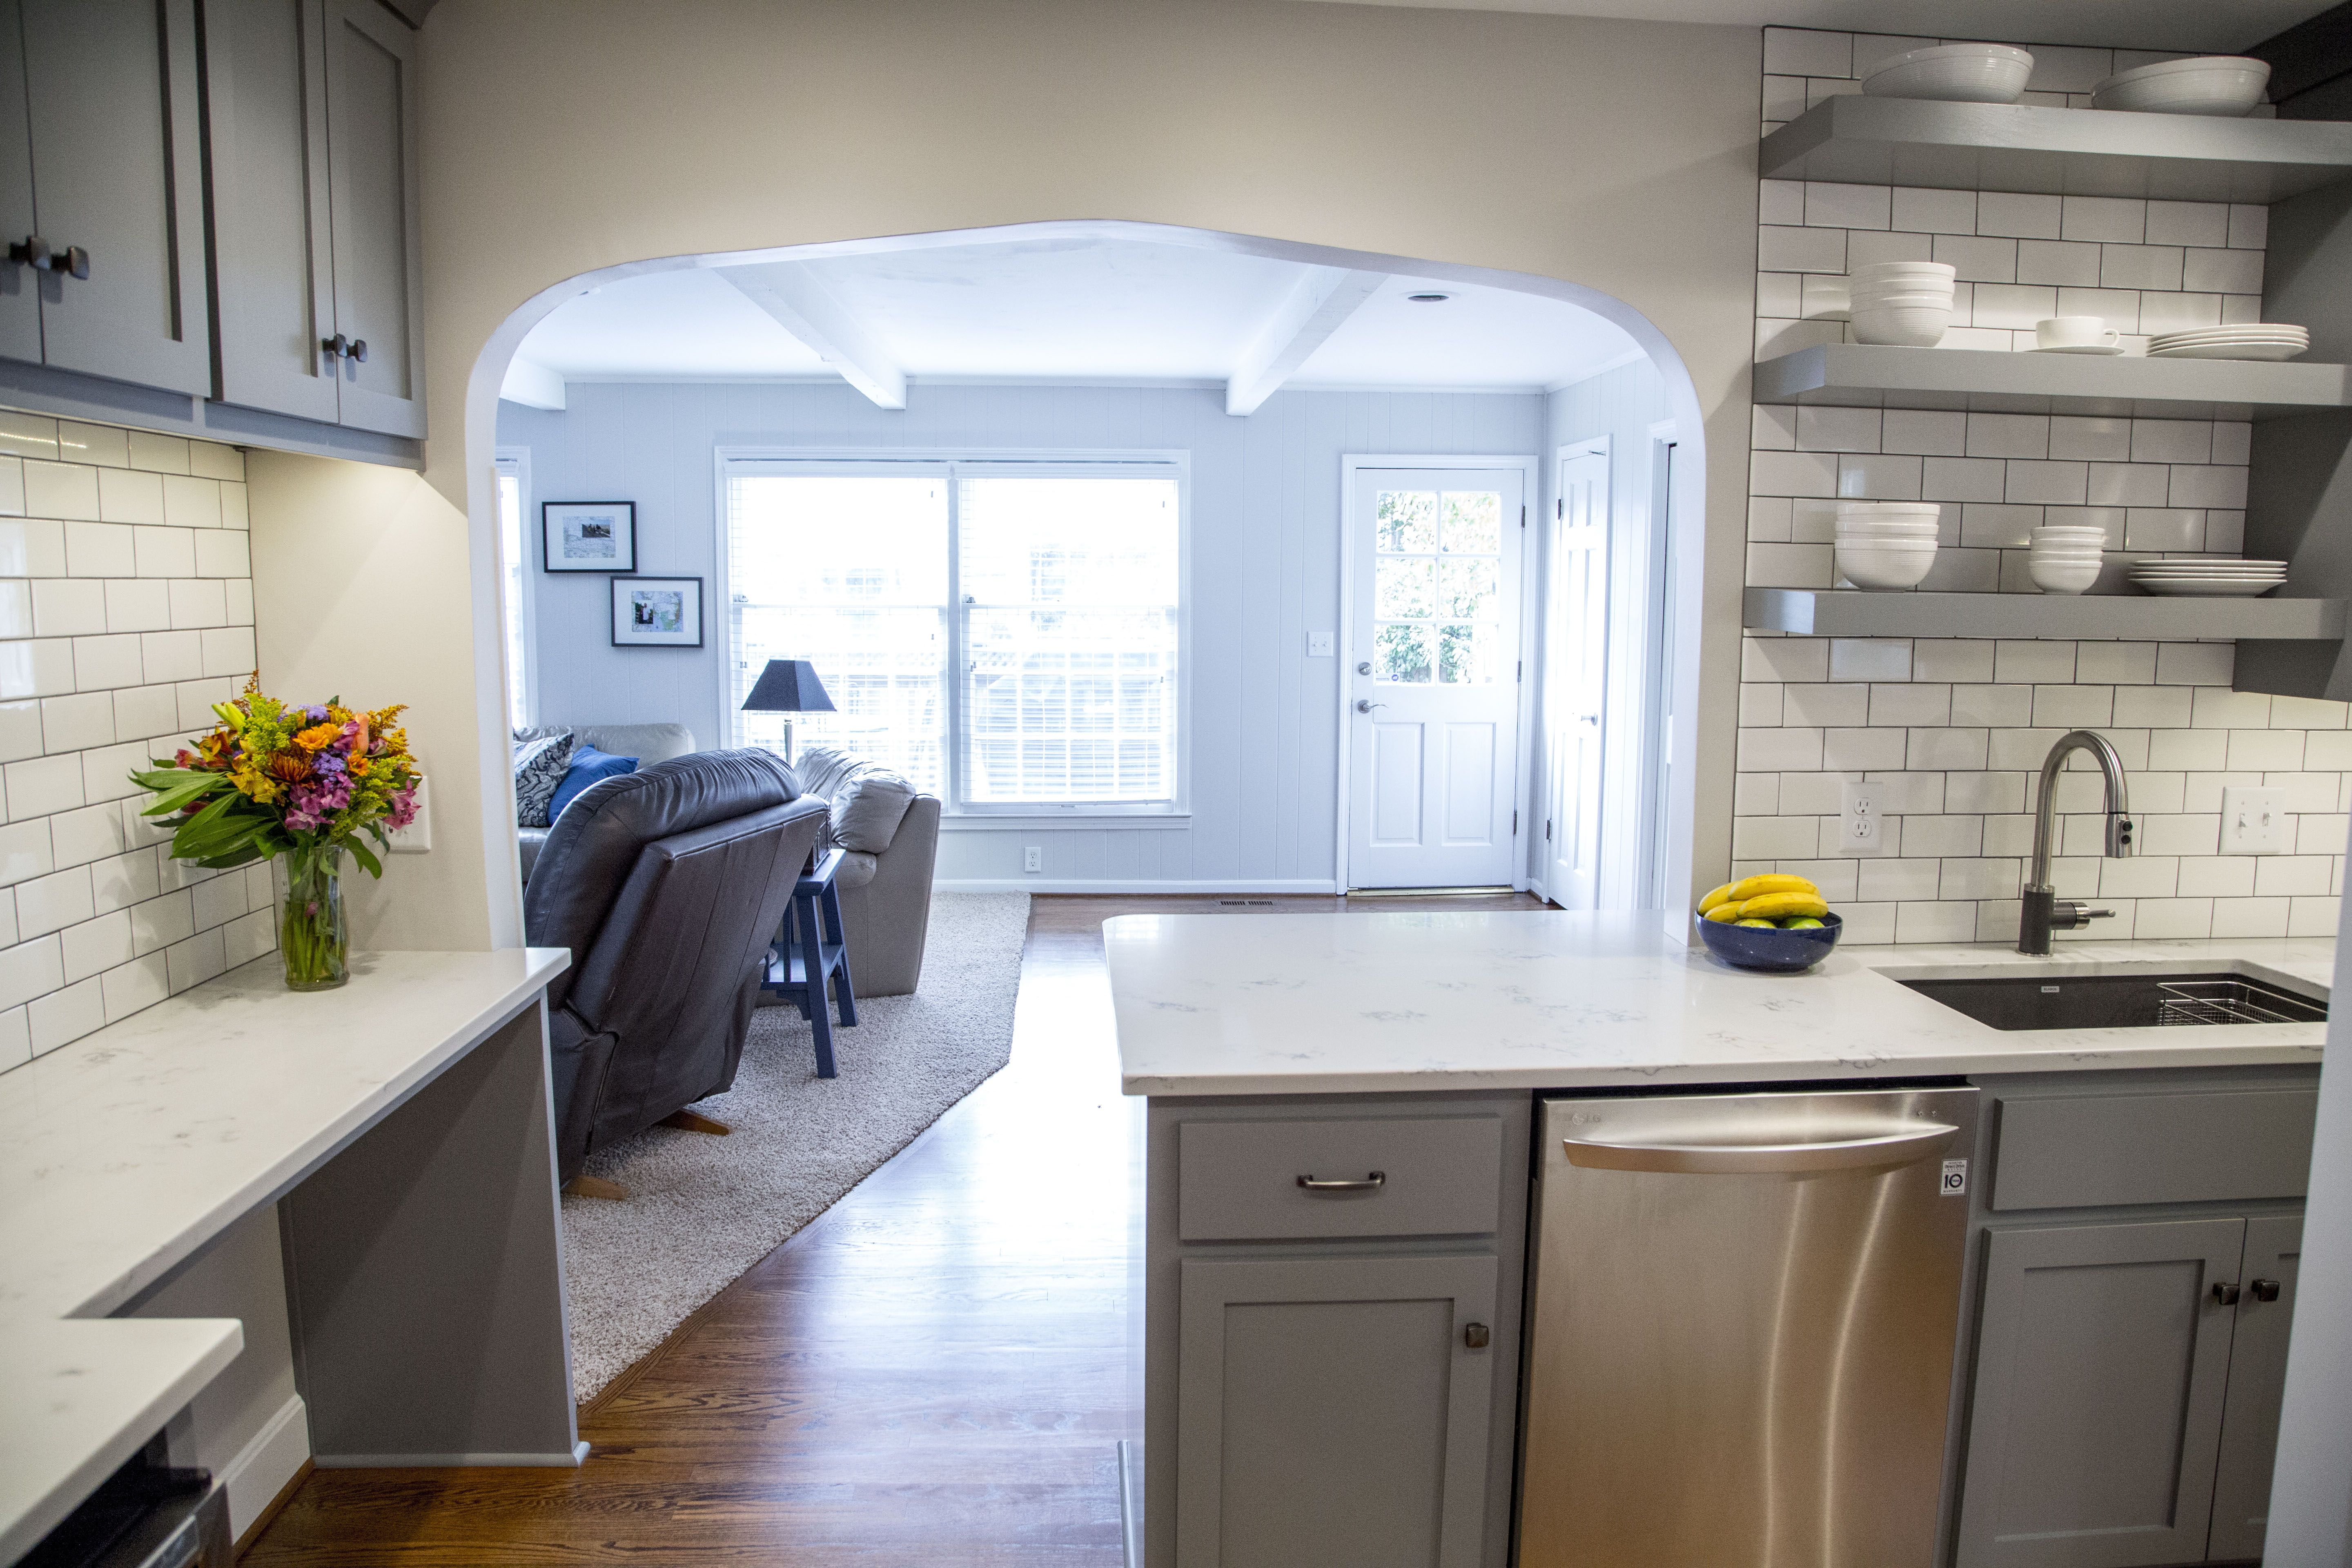 Brite White Subway Tile 3x6, Classic French Gray Shaker Cabinets ...